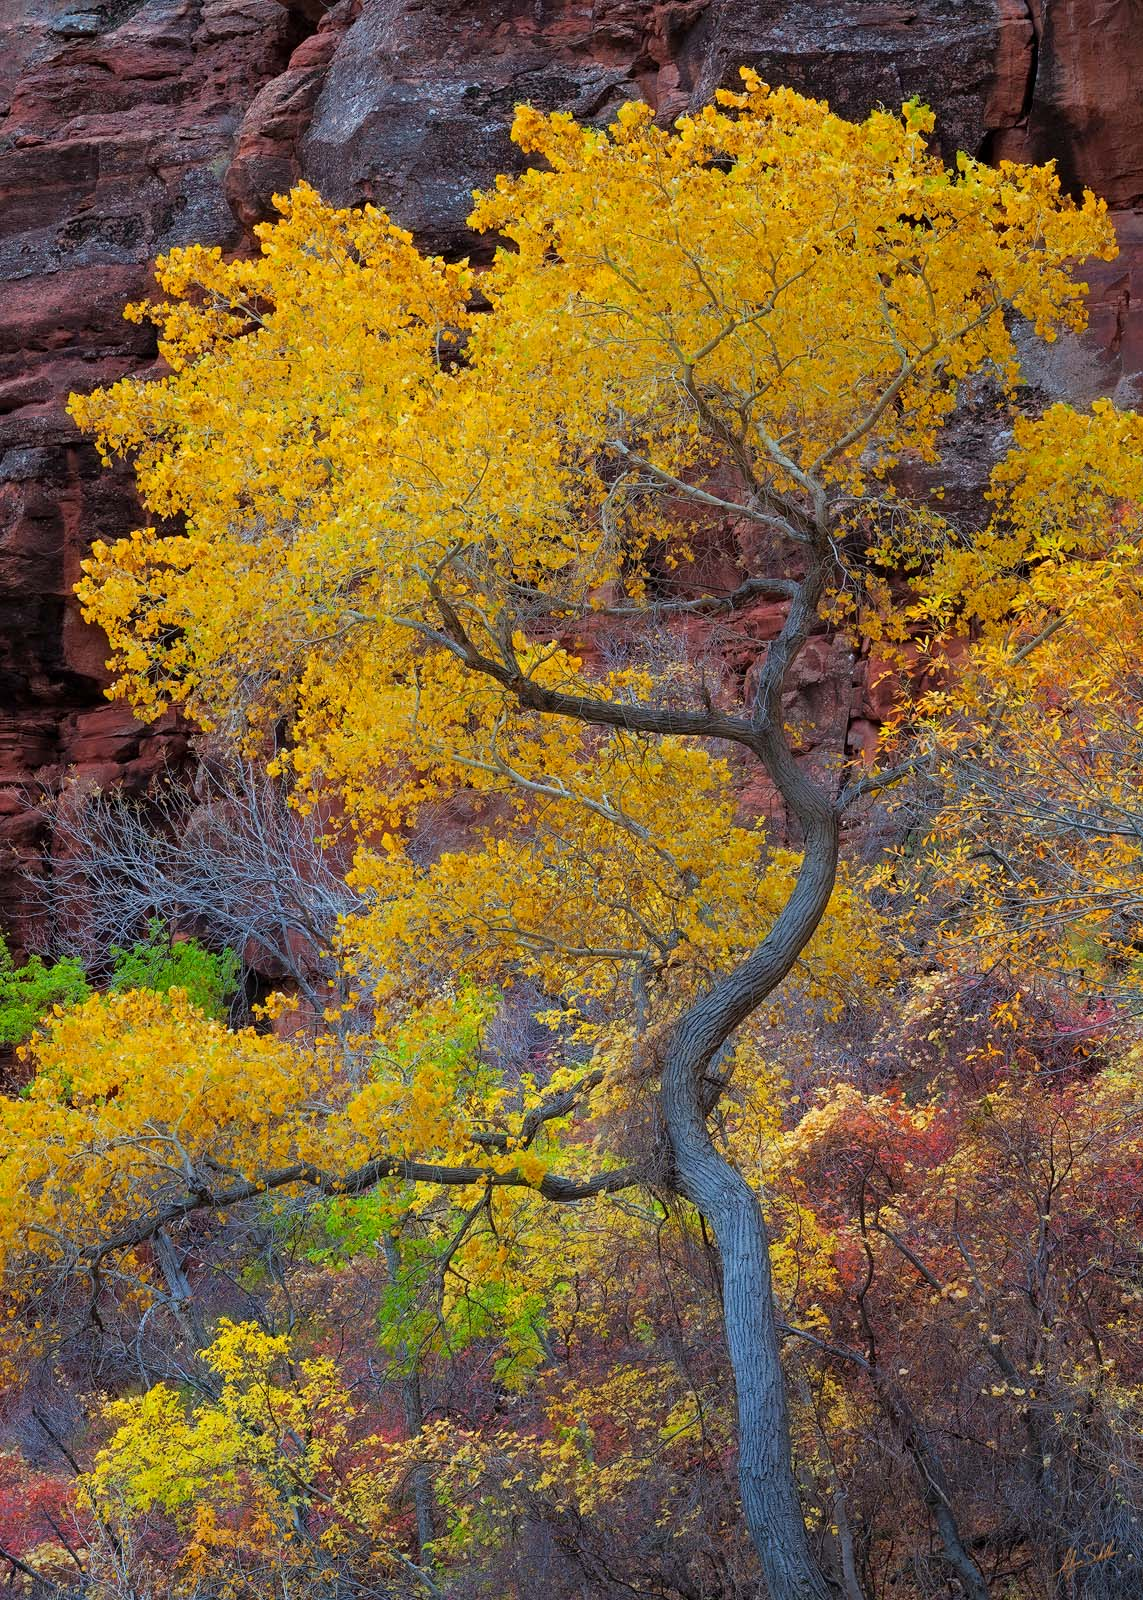 Fremont Cottonwood tree. Zion National Park in Utah. Photo © Adam Schallau, All Rights Reserved.